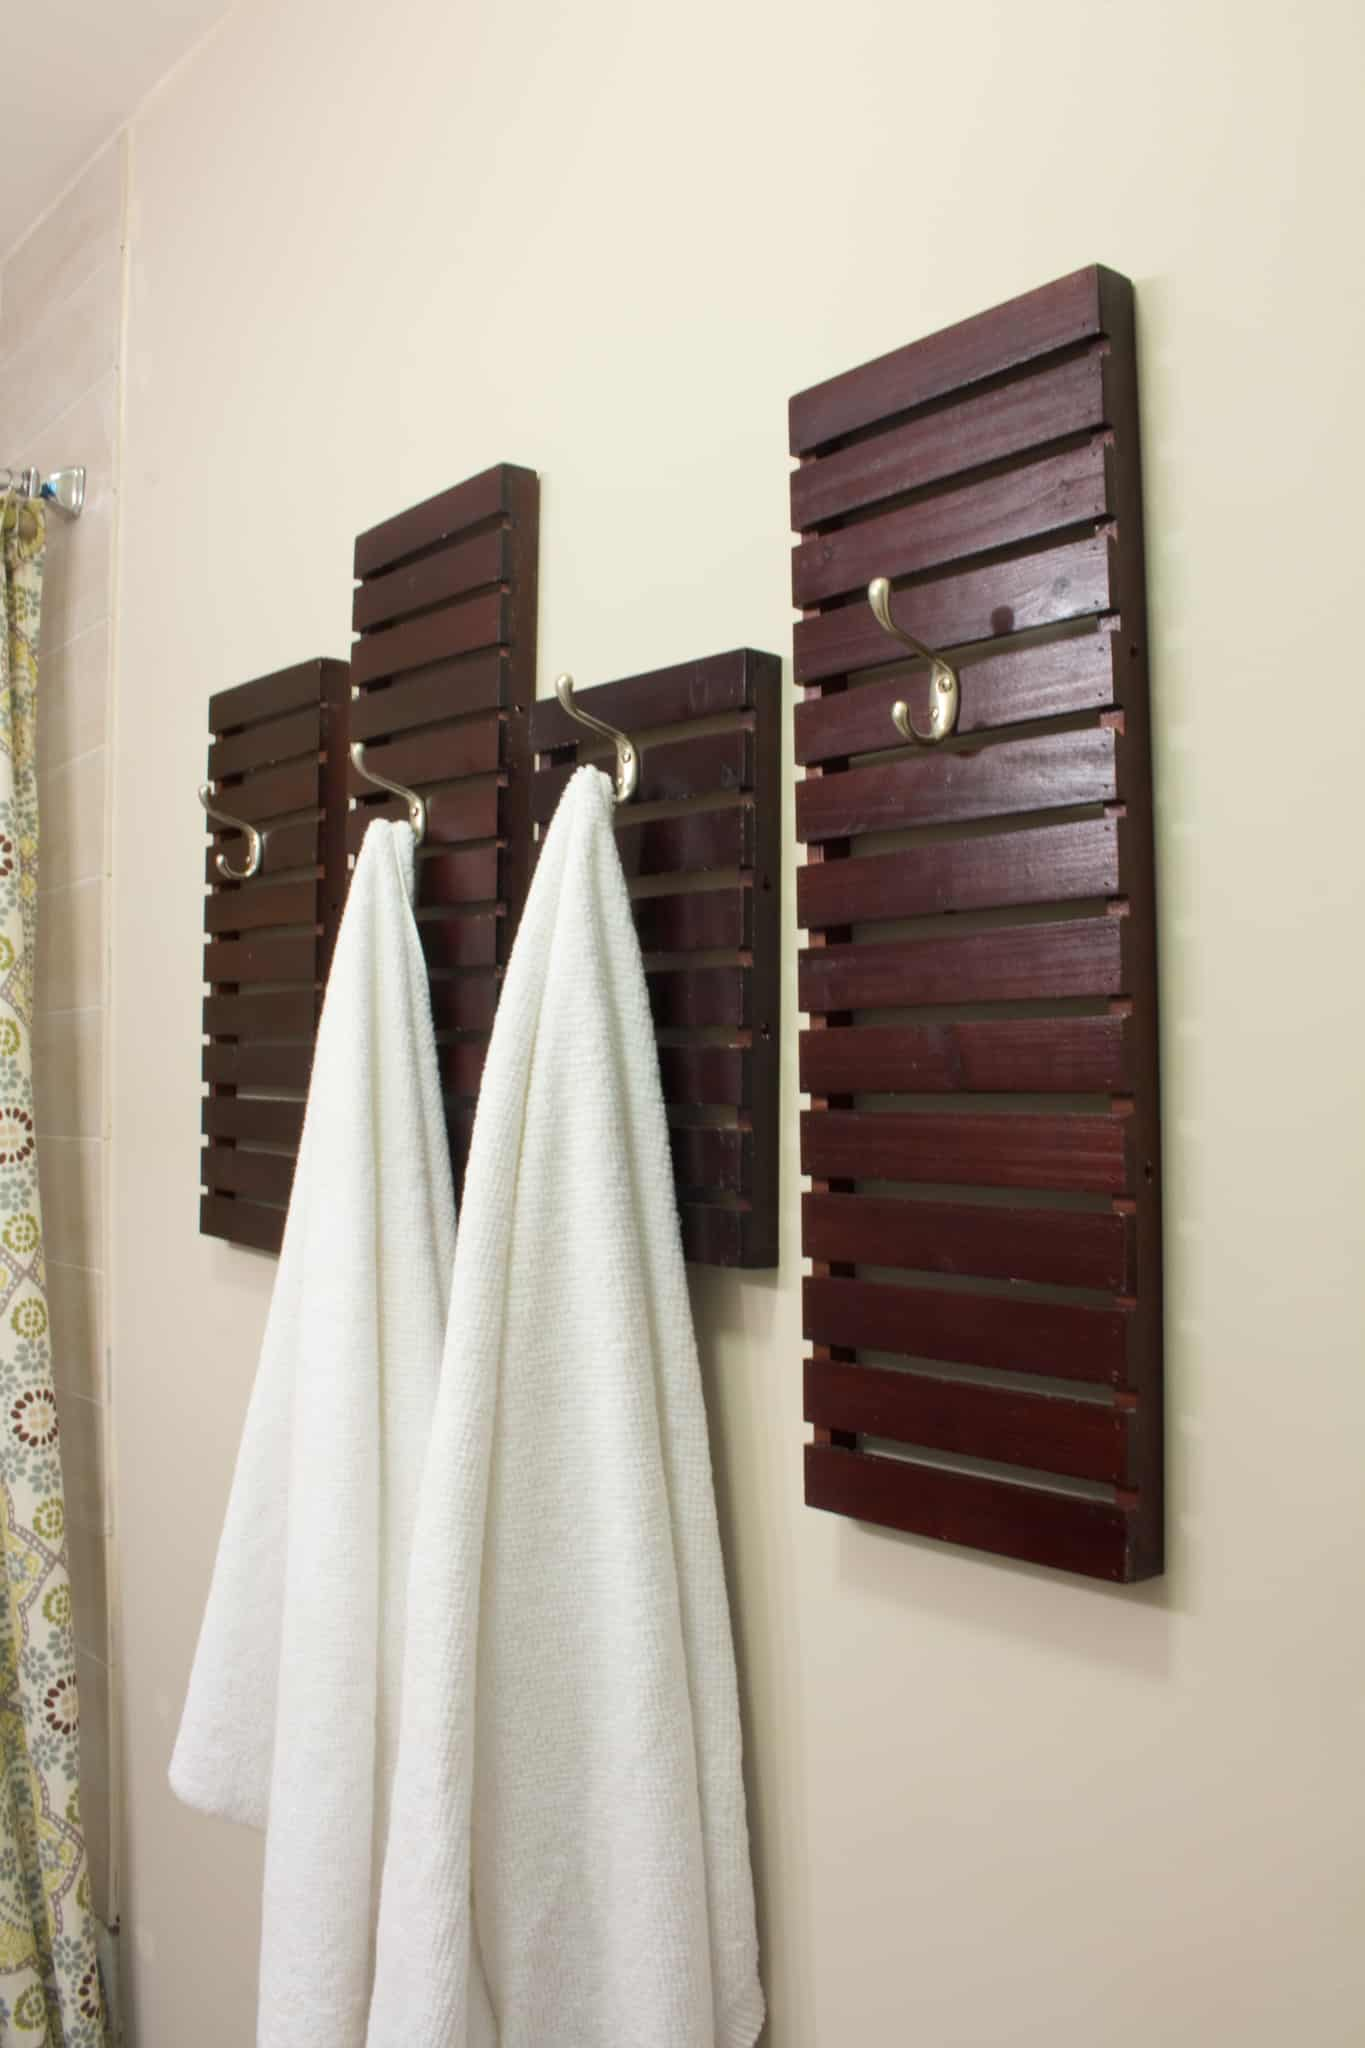 Badkamer Handdoekrek Diy Towel Rack Made From Shelves Thrift Store Upcycle